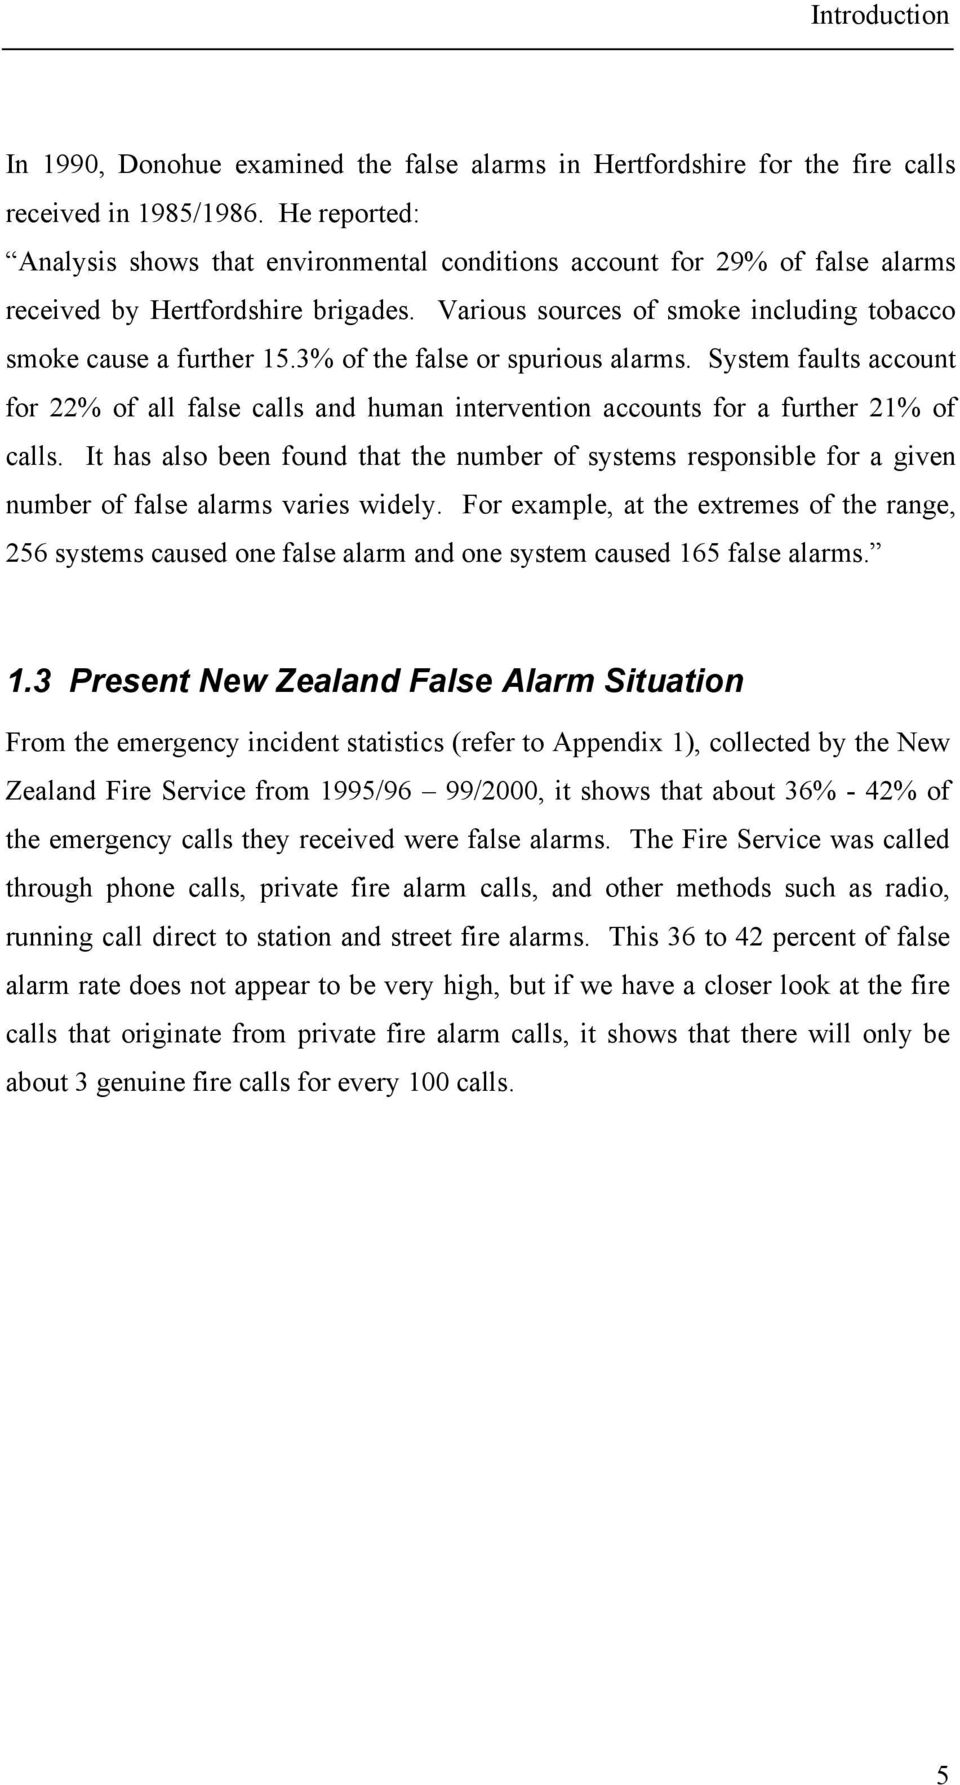 3% of the false or spurious alarms. System faults account for 22% of all false calls and human intervention accounts for a further 21% of calls.